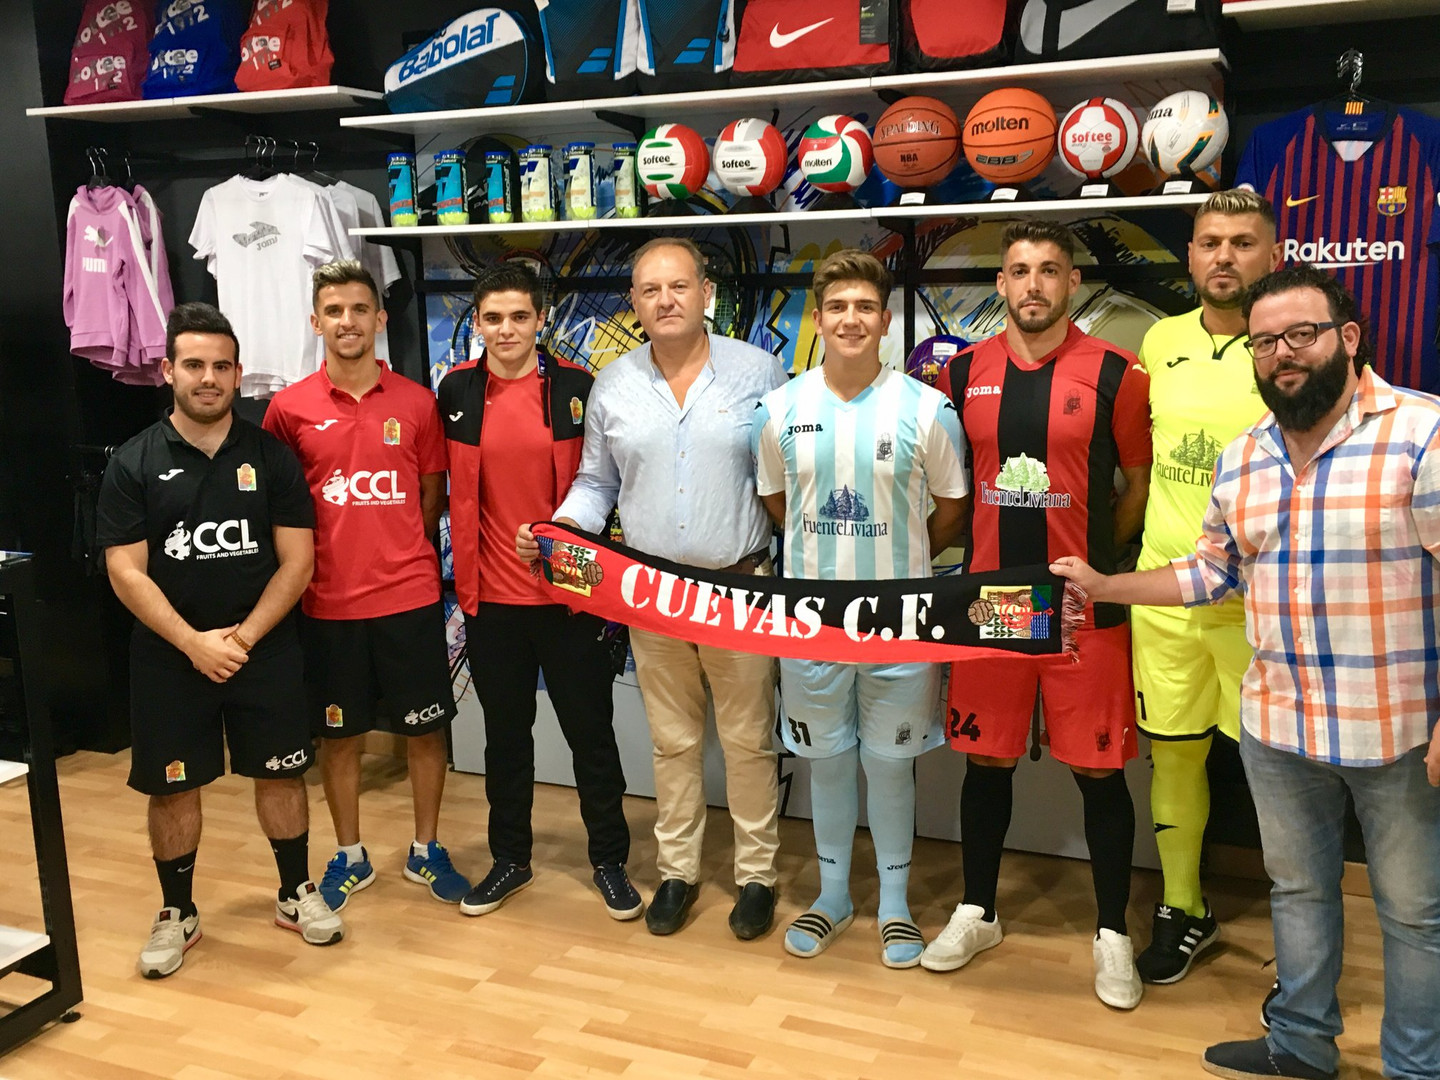 Cuevas Football Club Sponsorship